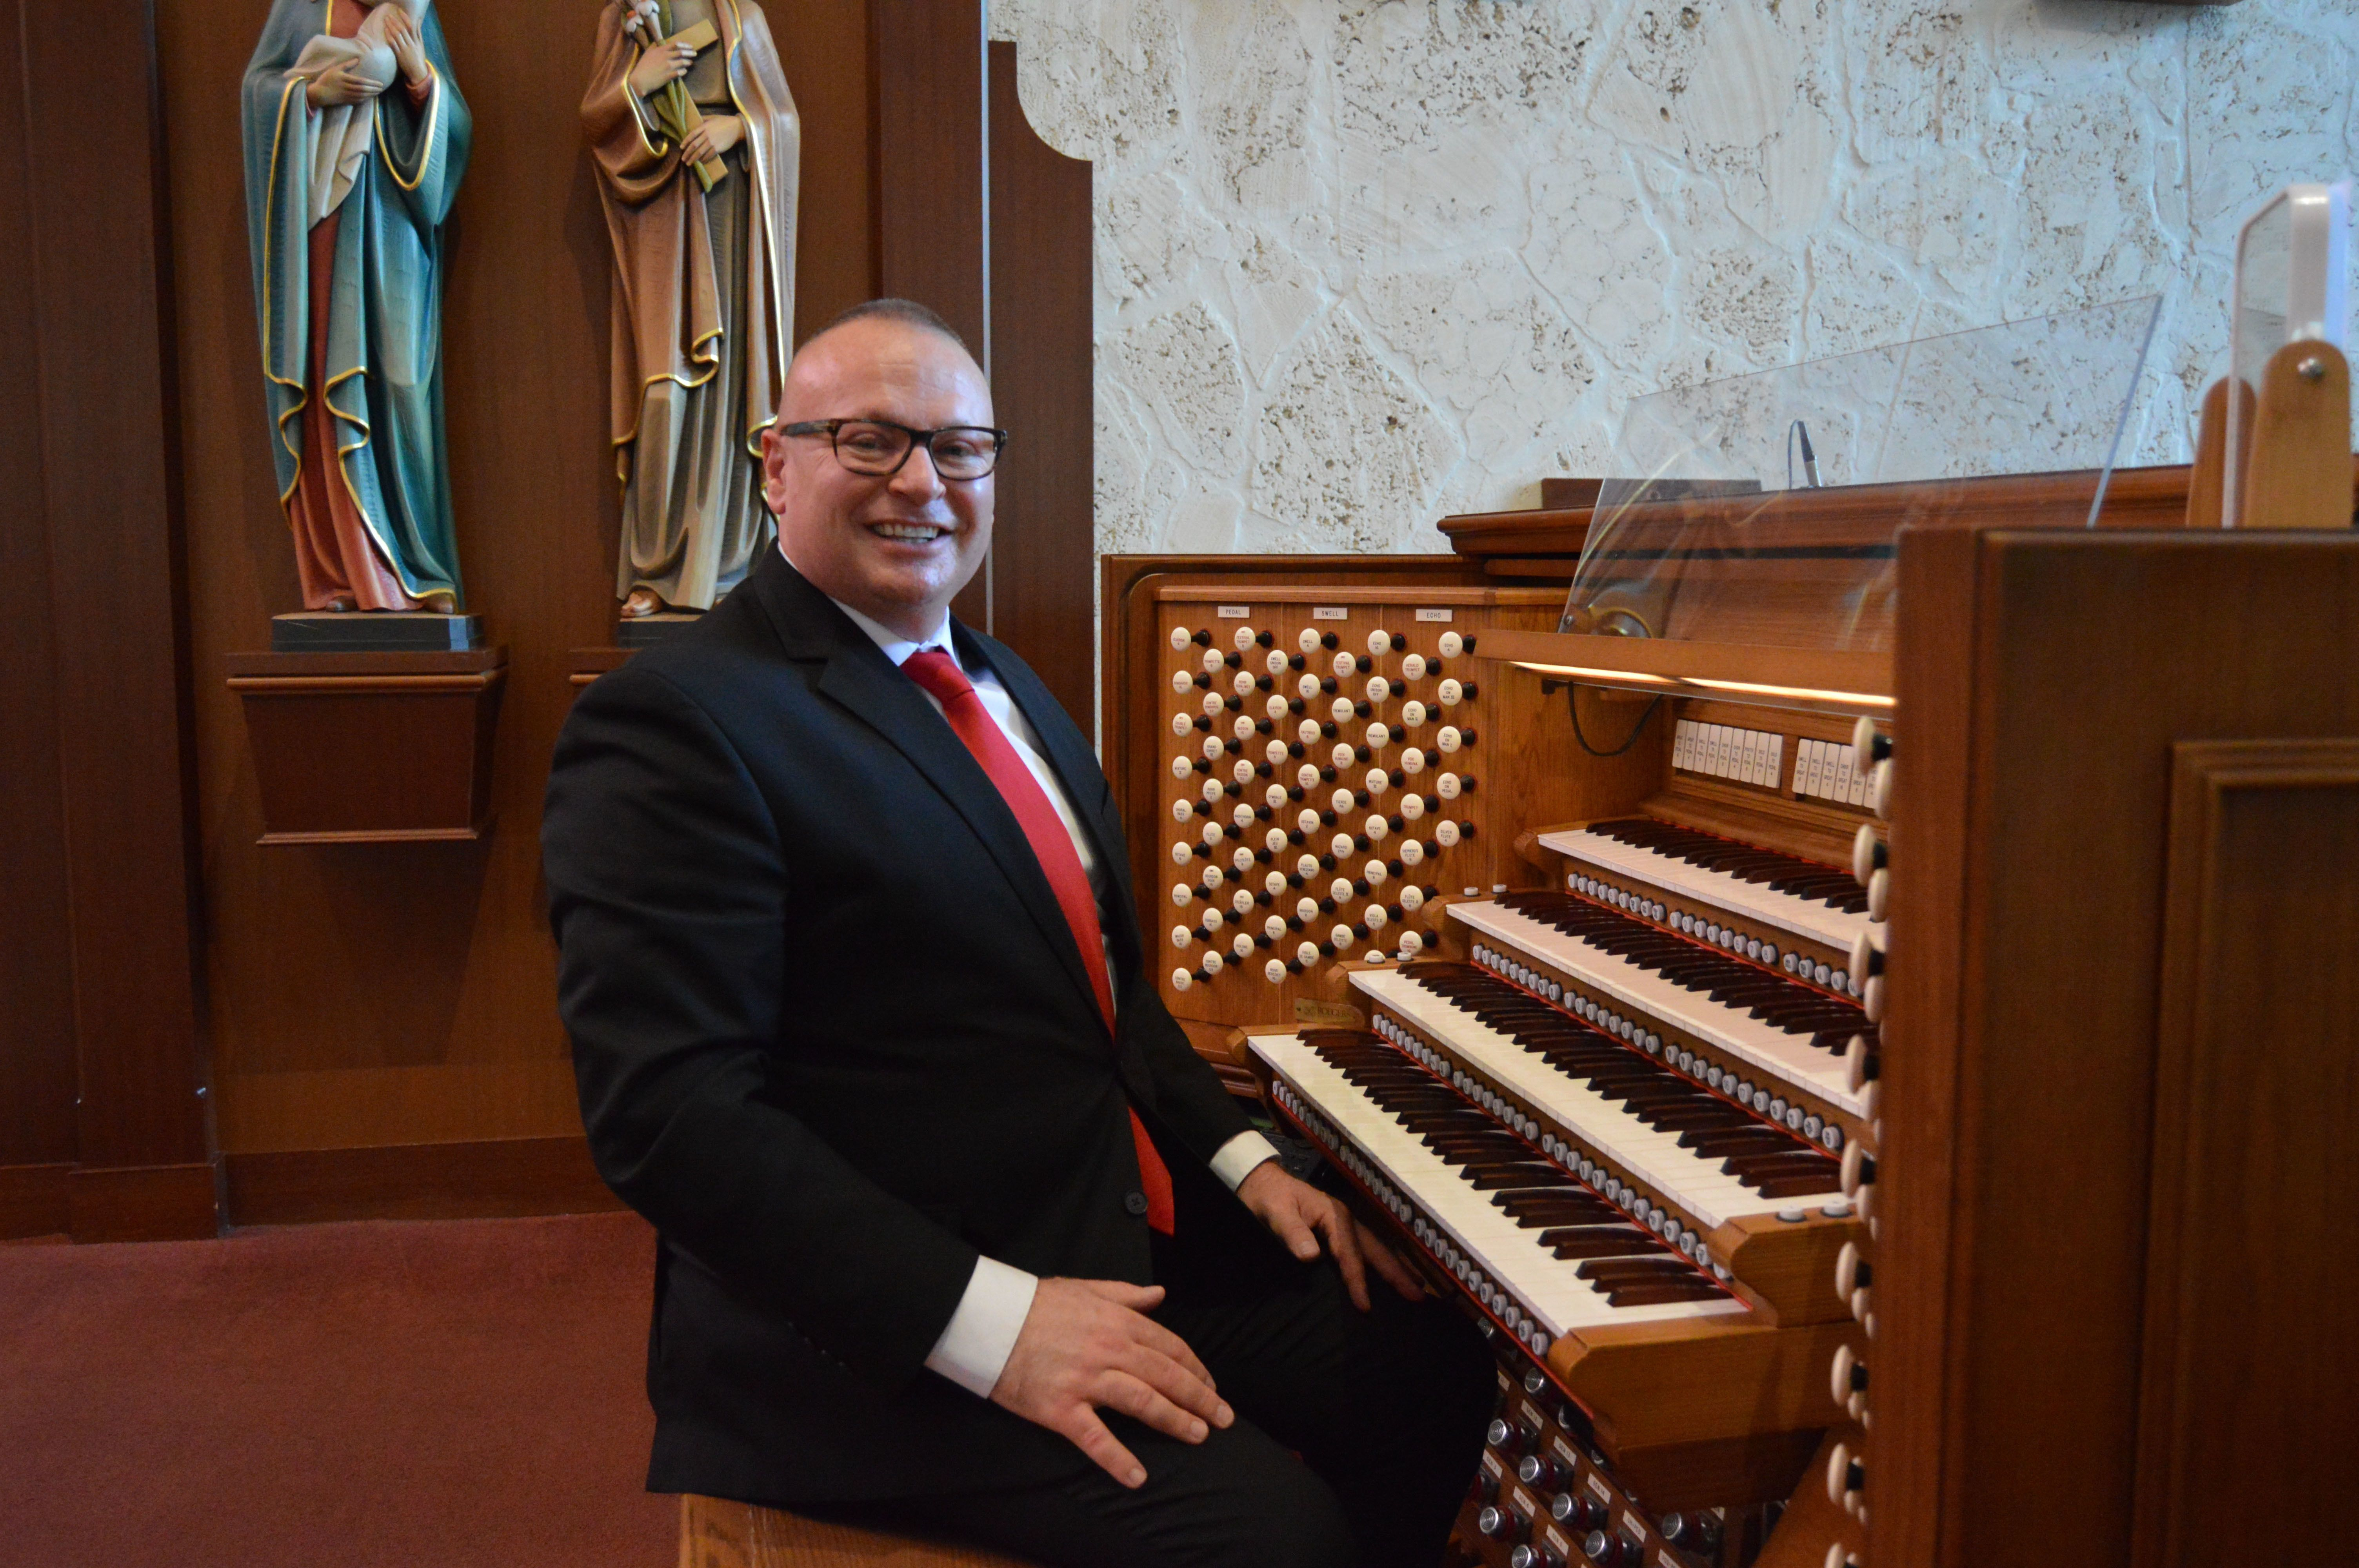 Cathedral welcomes new director of music